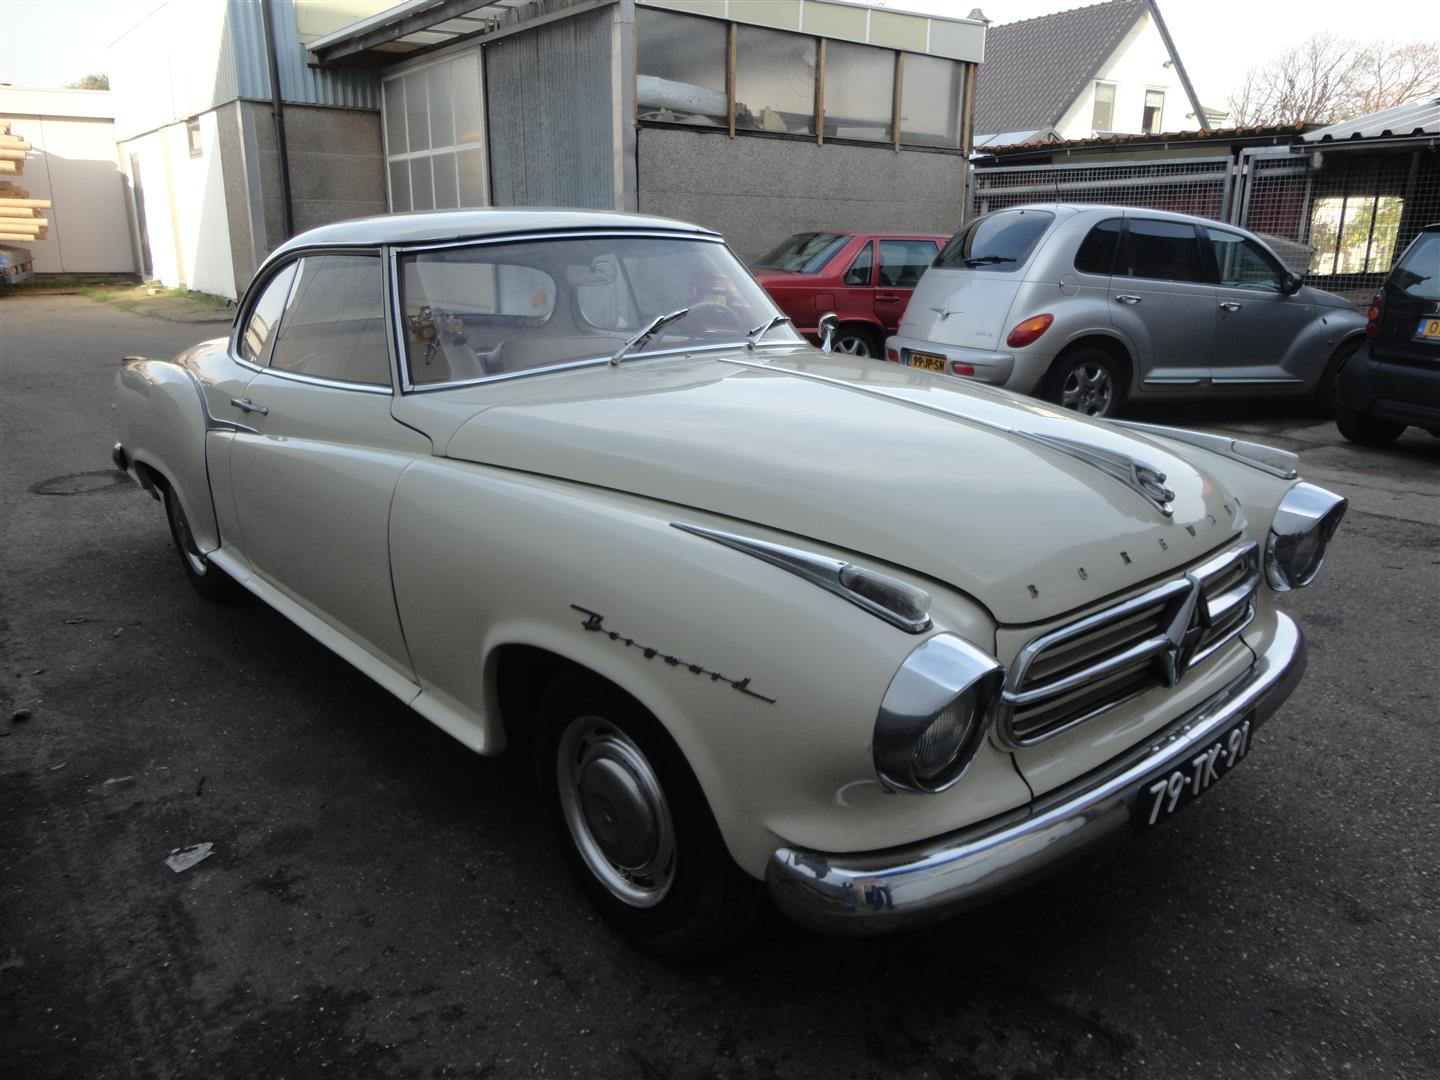 Ex Ormsby Falcon Xw Drag Car also 300D Mercedes 1959  232 011 together with Mercedes 180 Cdi W169 Classic 21000 together with C469563 as well 22287. on classic cars that we sold